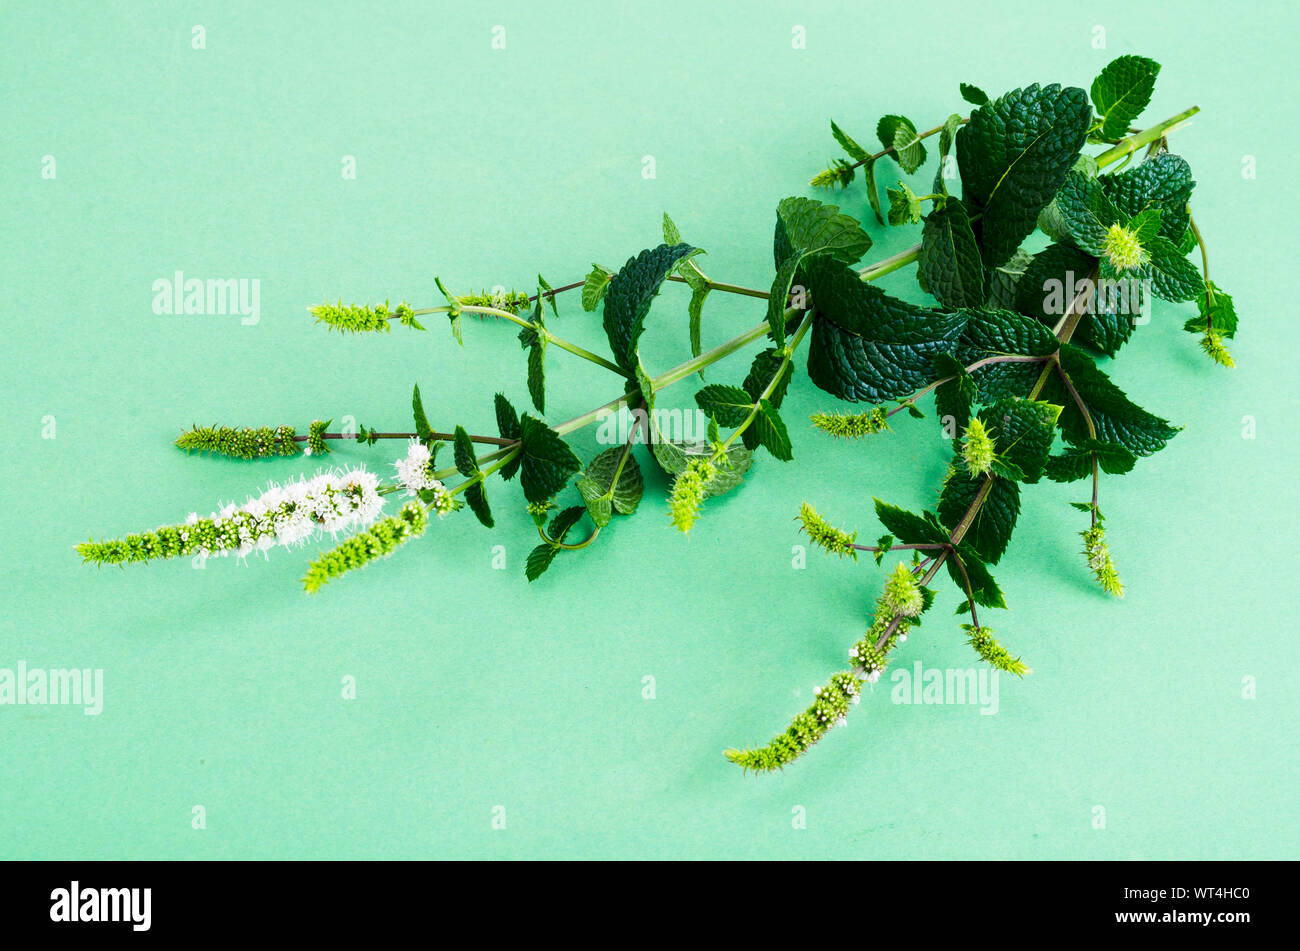 Peppermint. Mint grass with flowers close up. Studio Photo Stock Photo